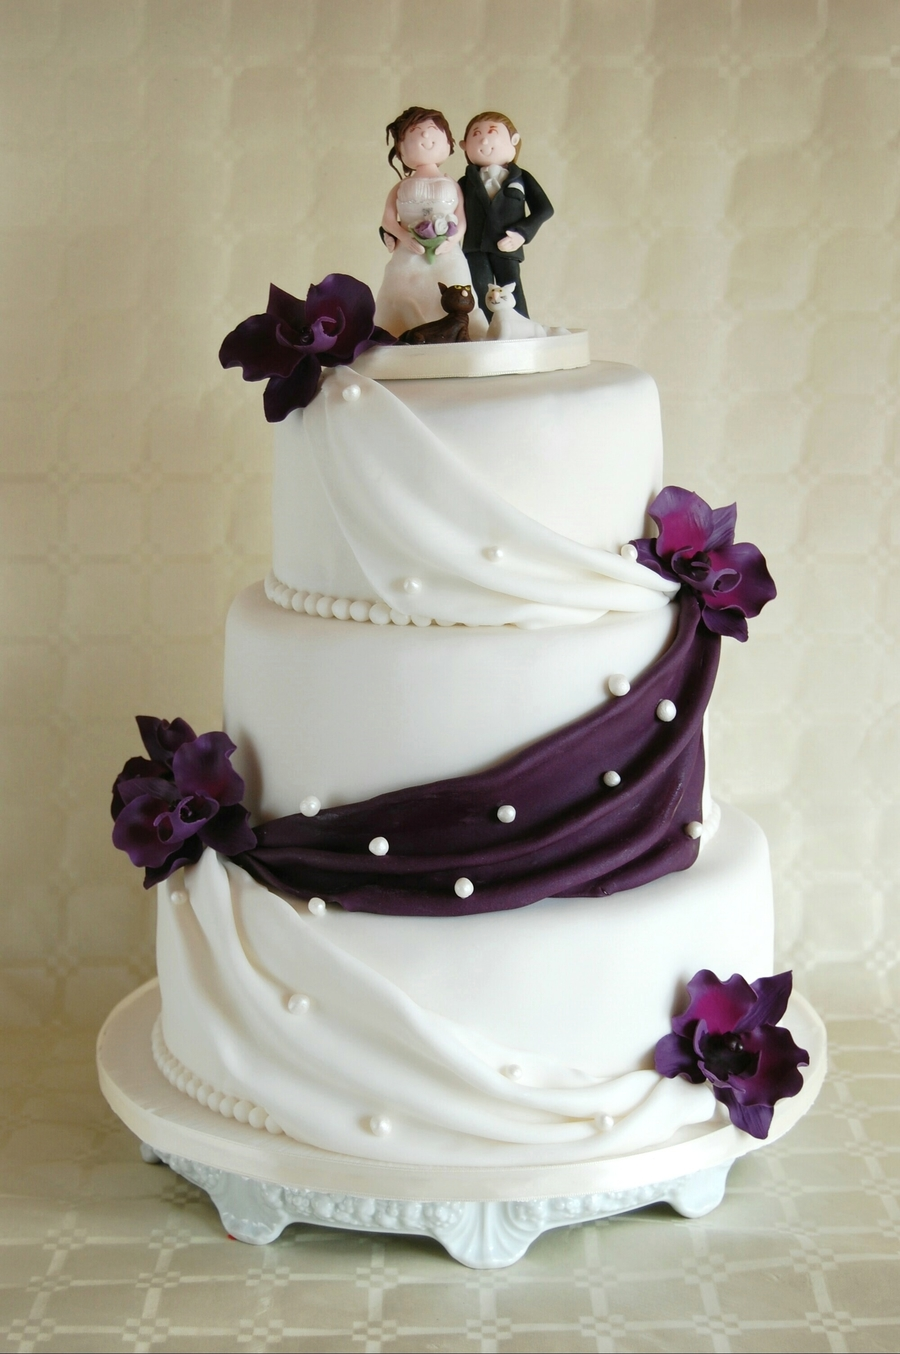 simple elegant wedding cake lilac orchids. Black Bedroom Furniture Sets. Home Design Ideas